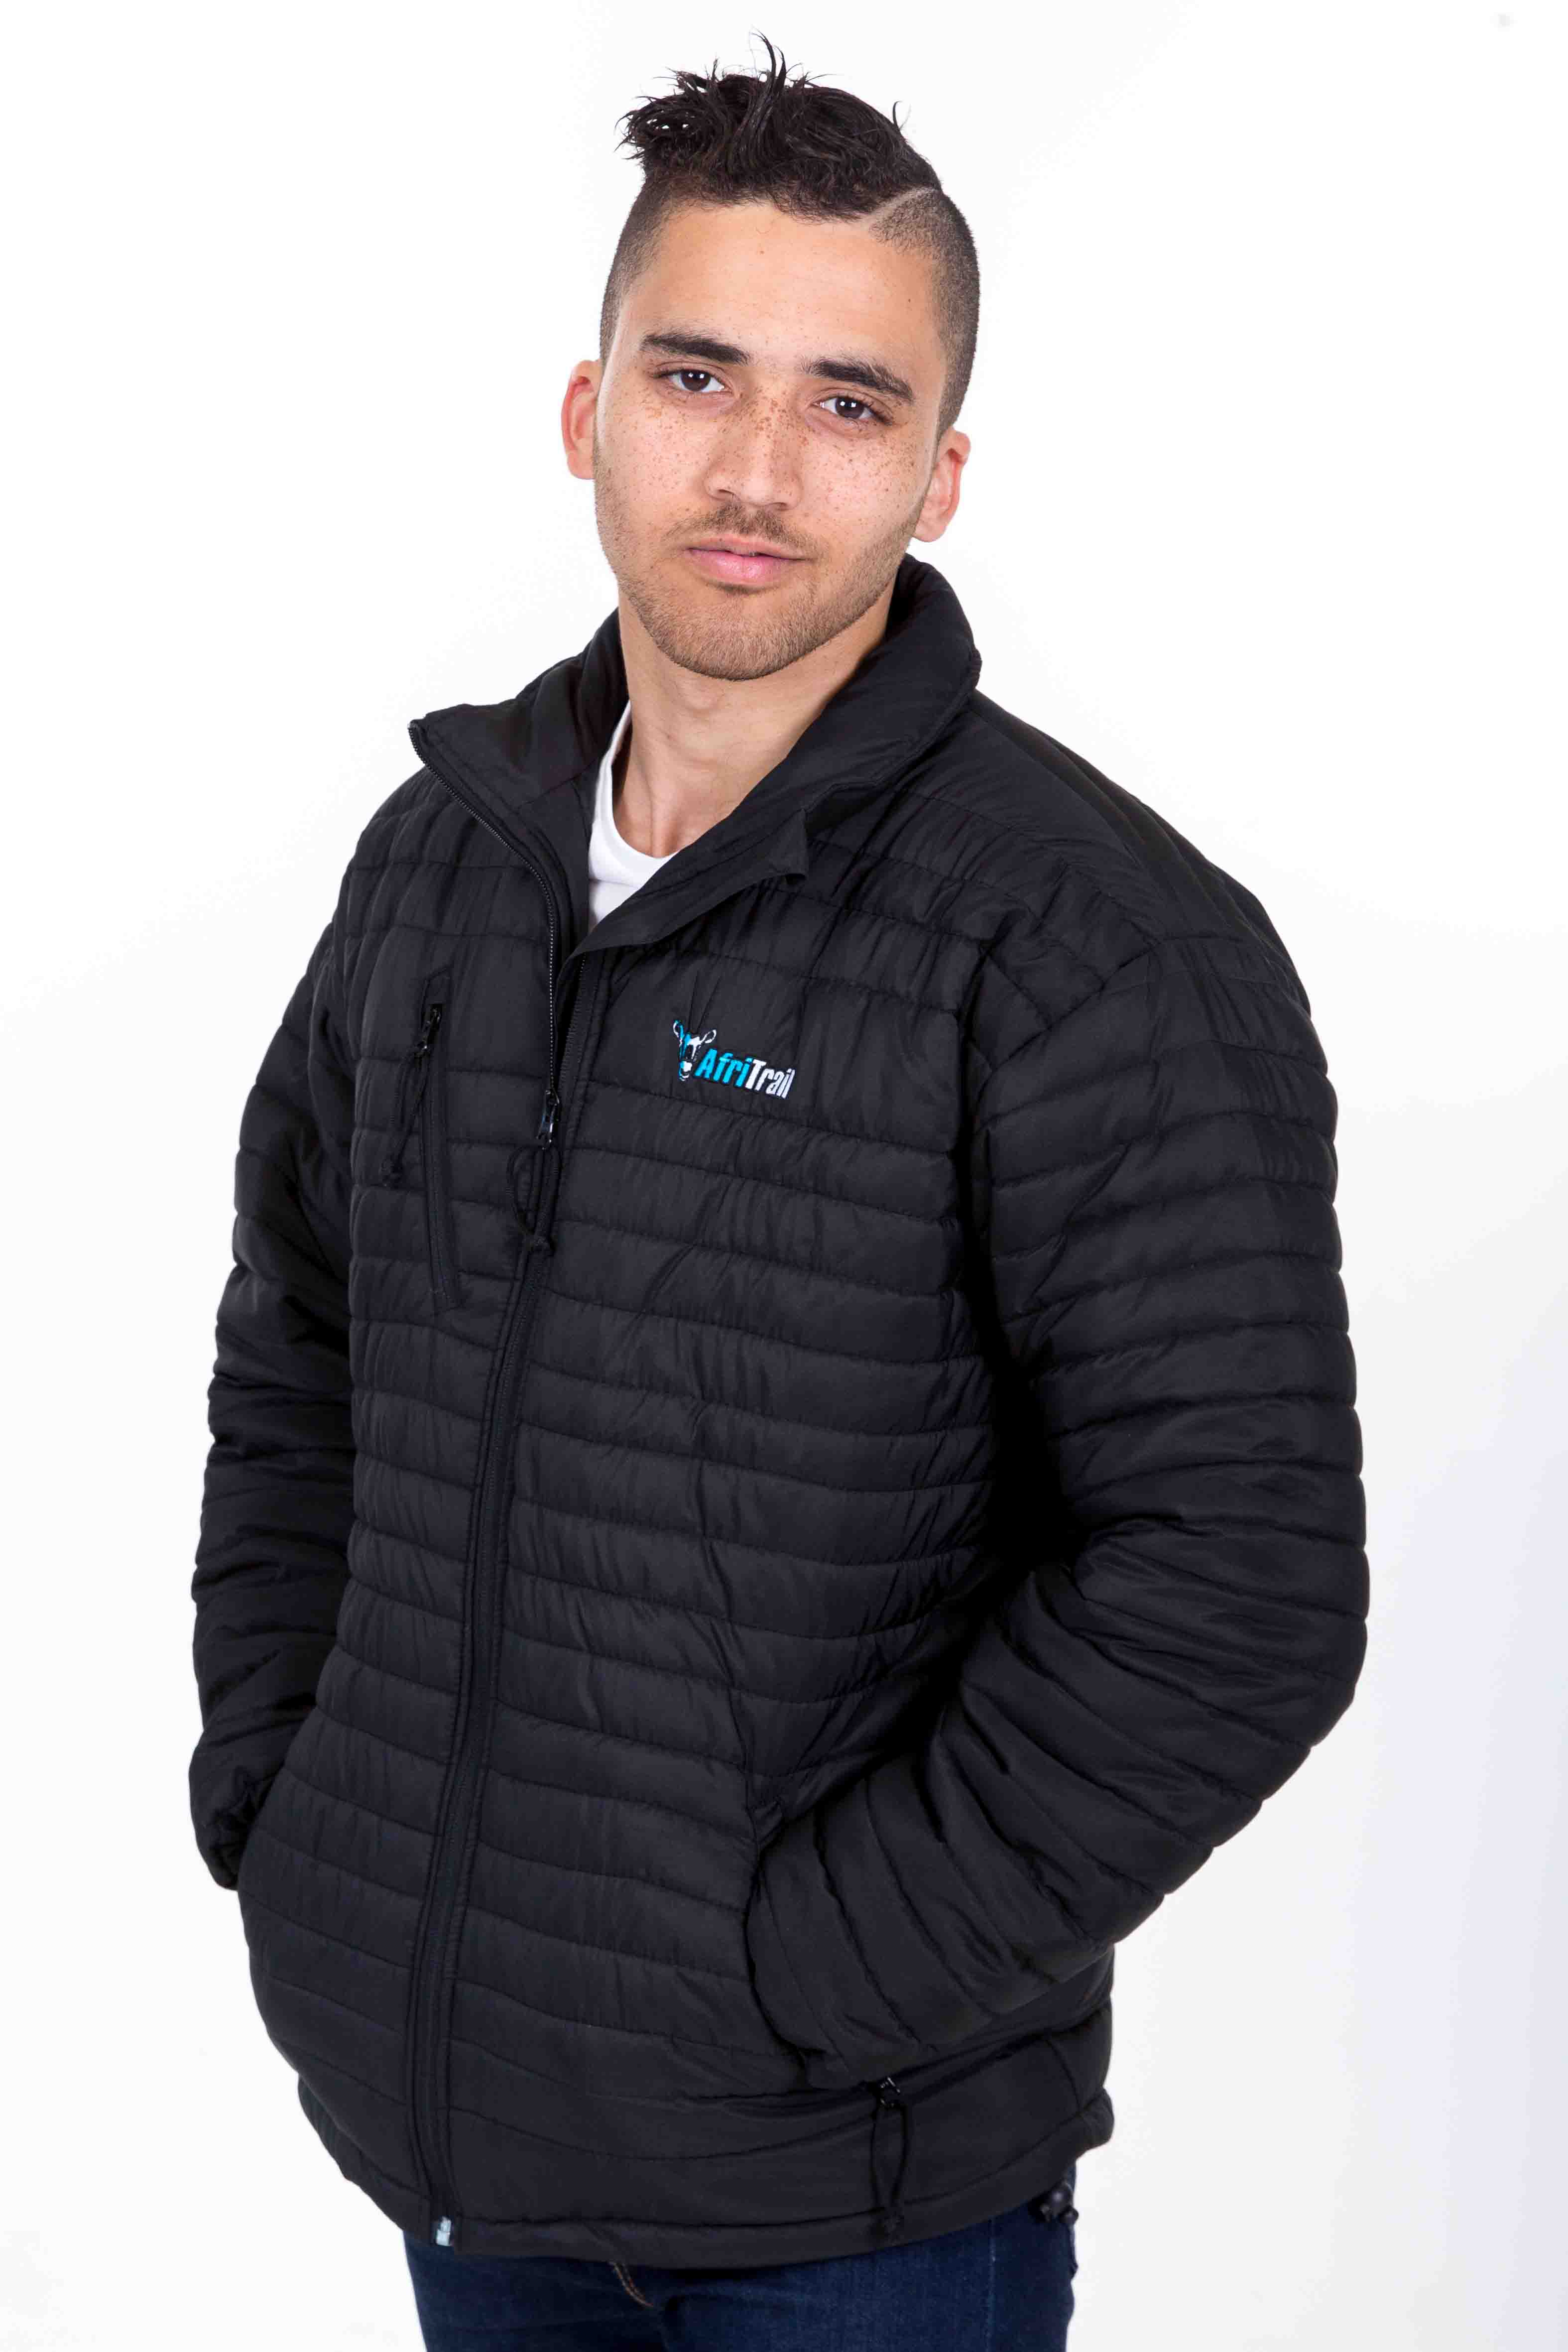 afritrail-micro-active-men's-padded-jacket